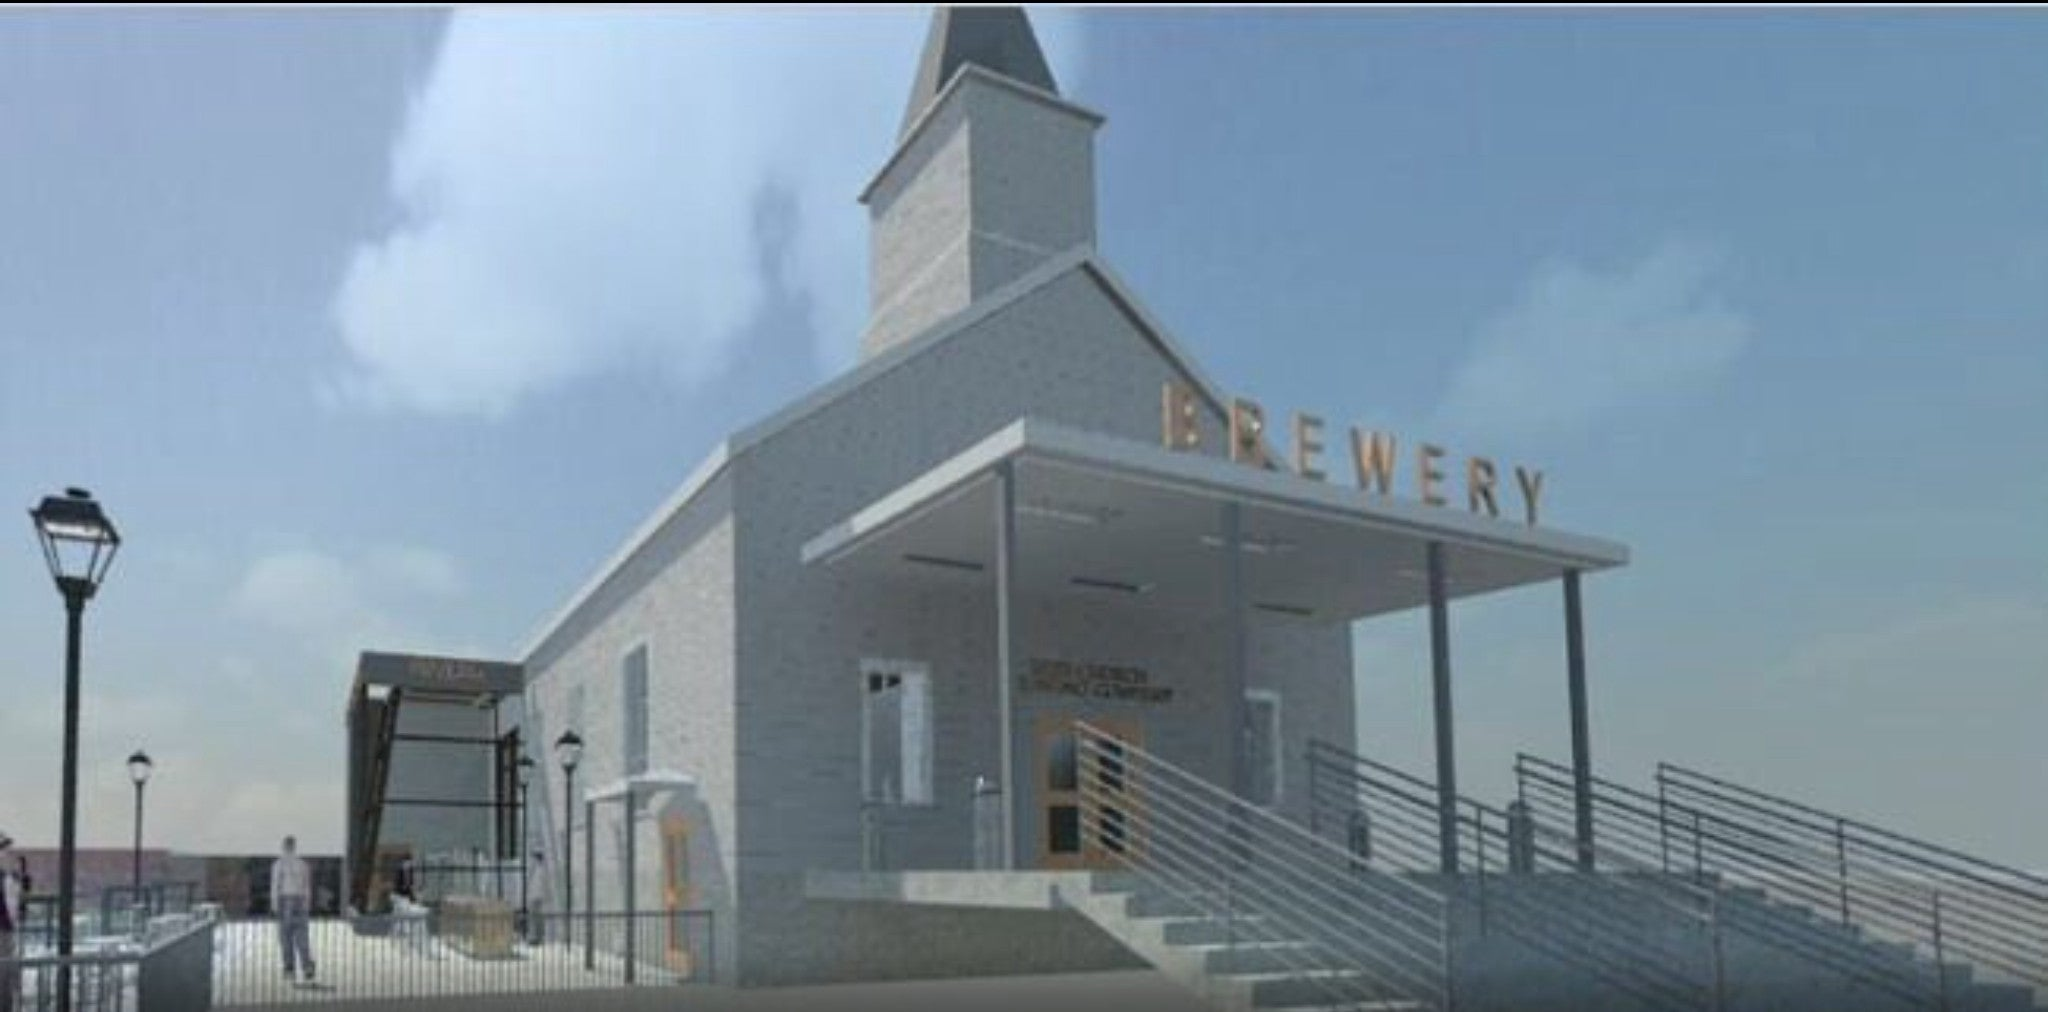 Beer Church Makes Forbes!